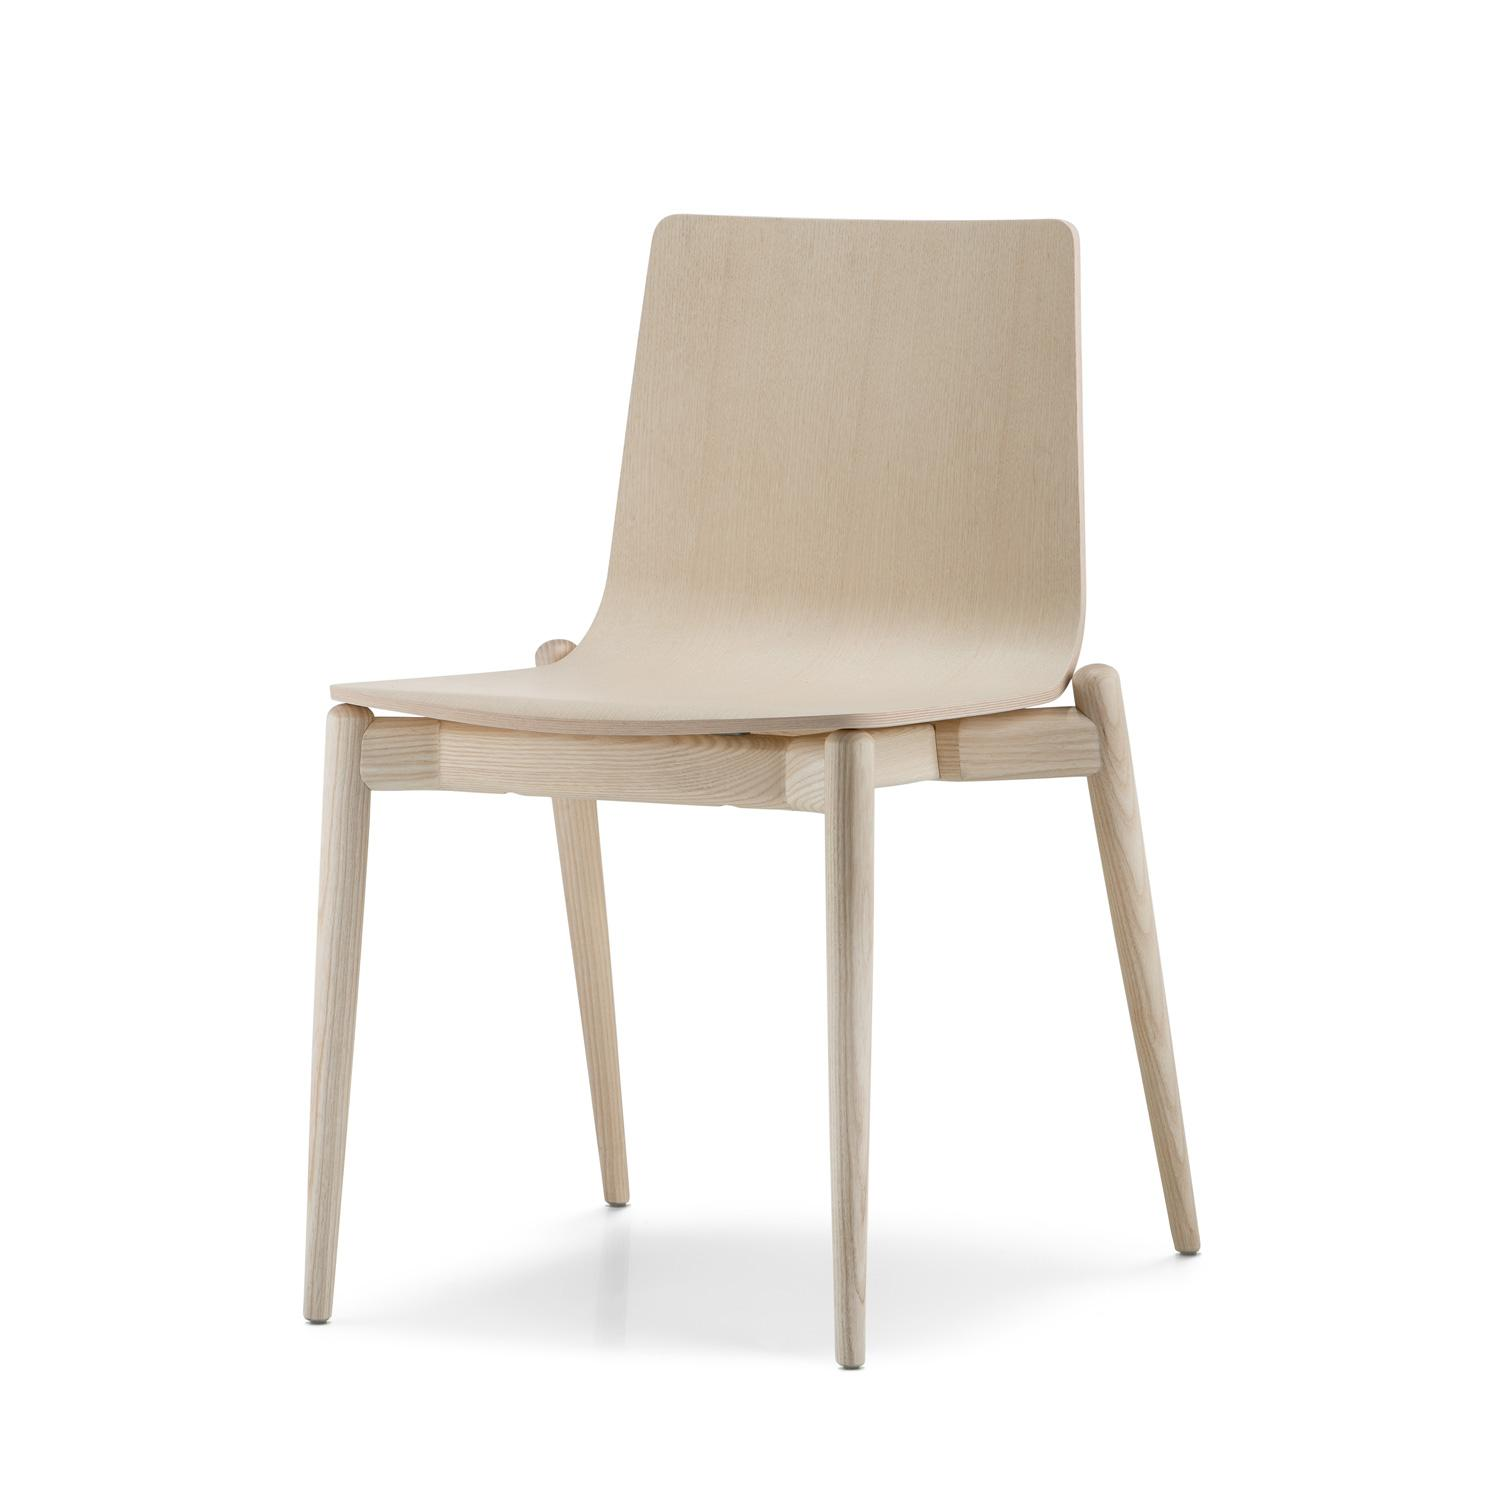 pedrali-malmo-chair